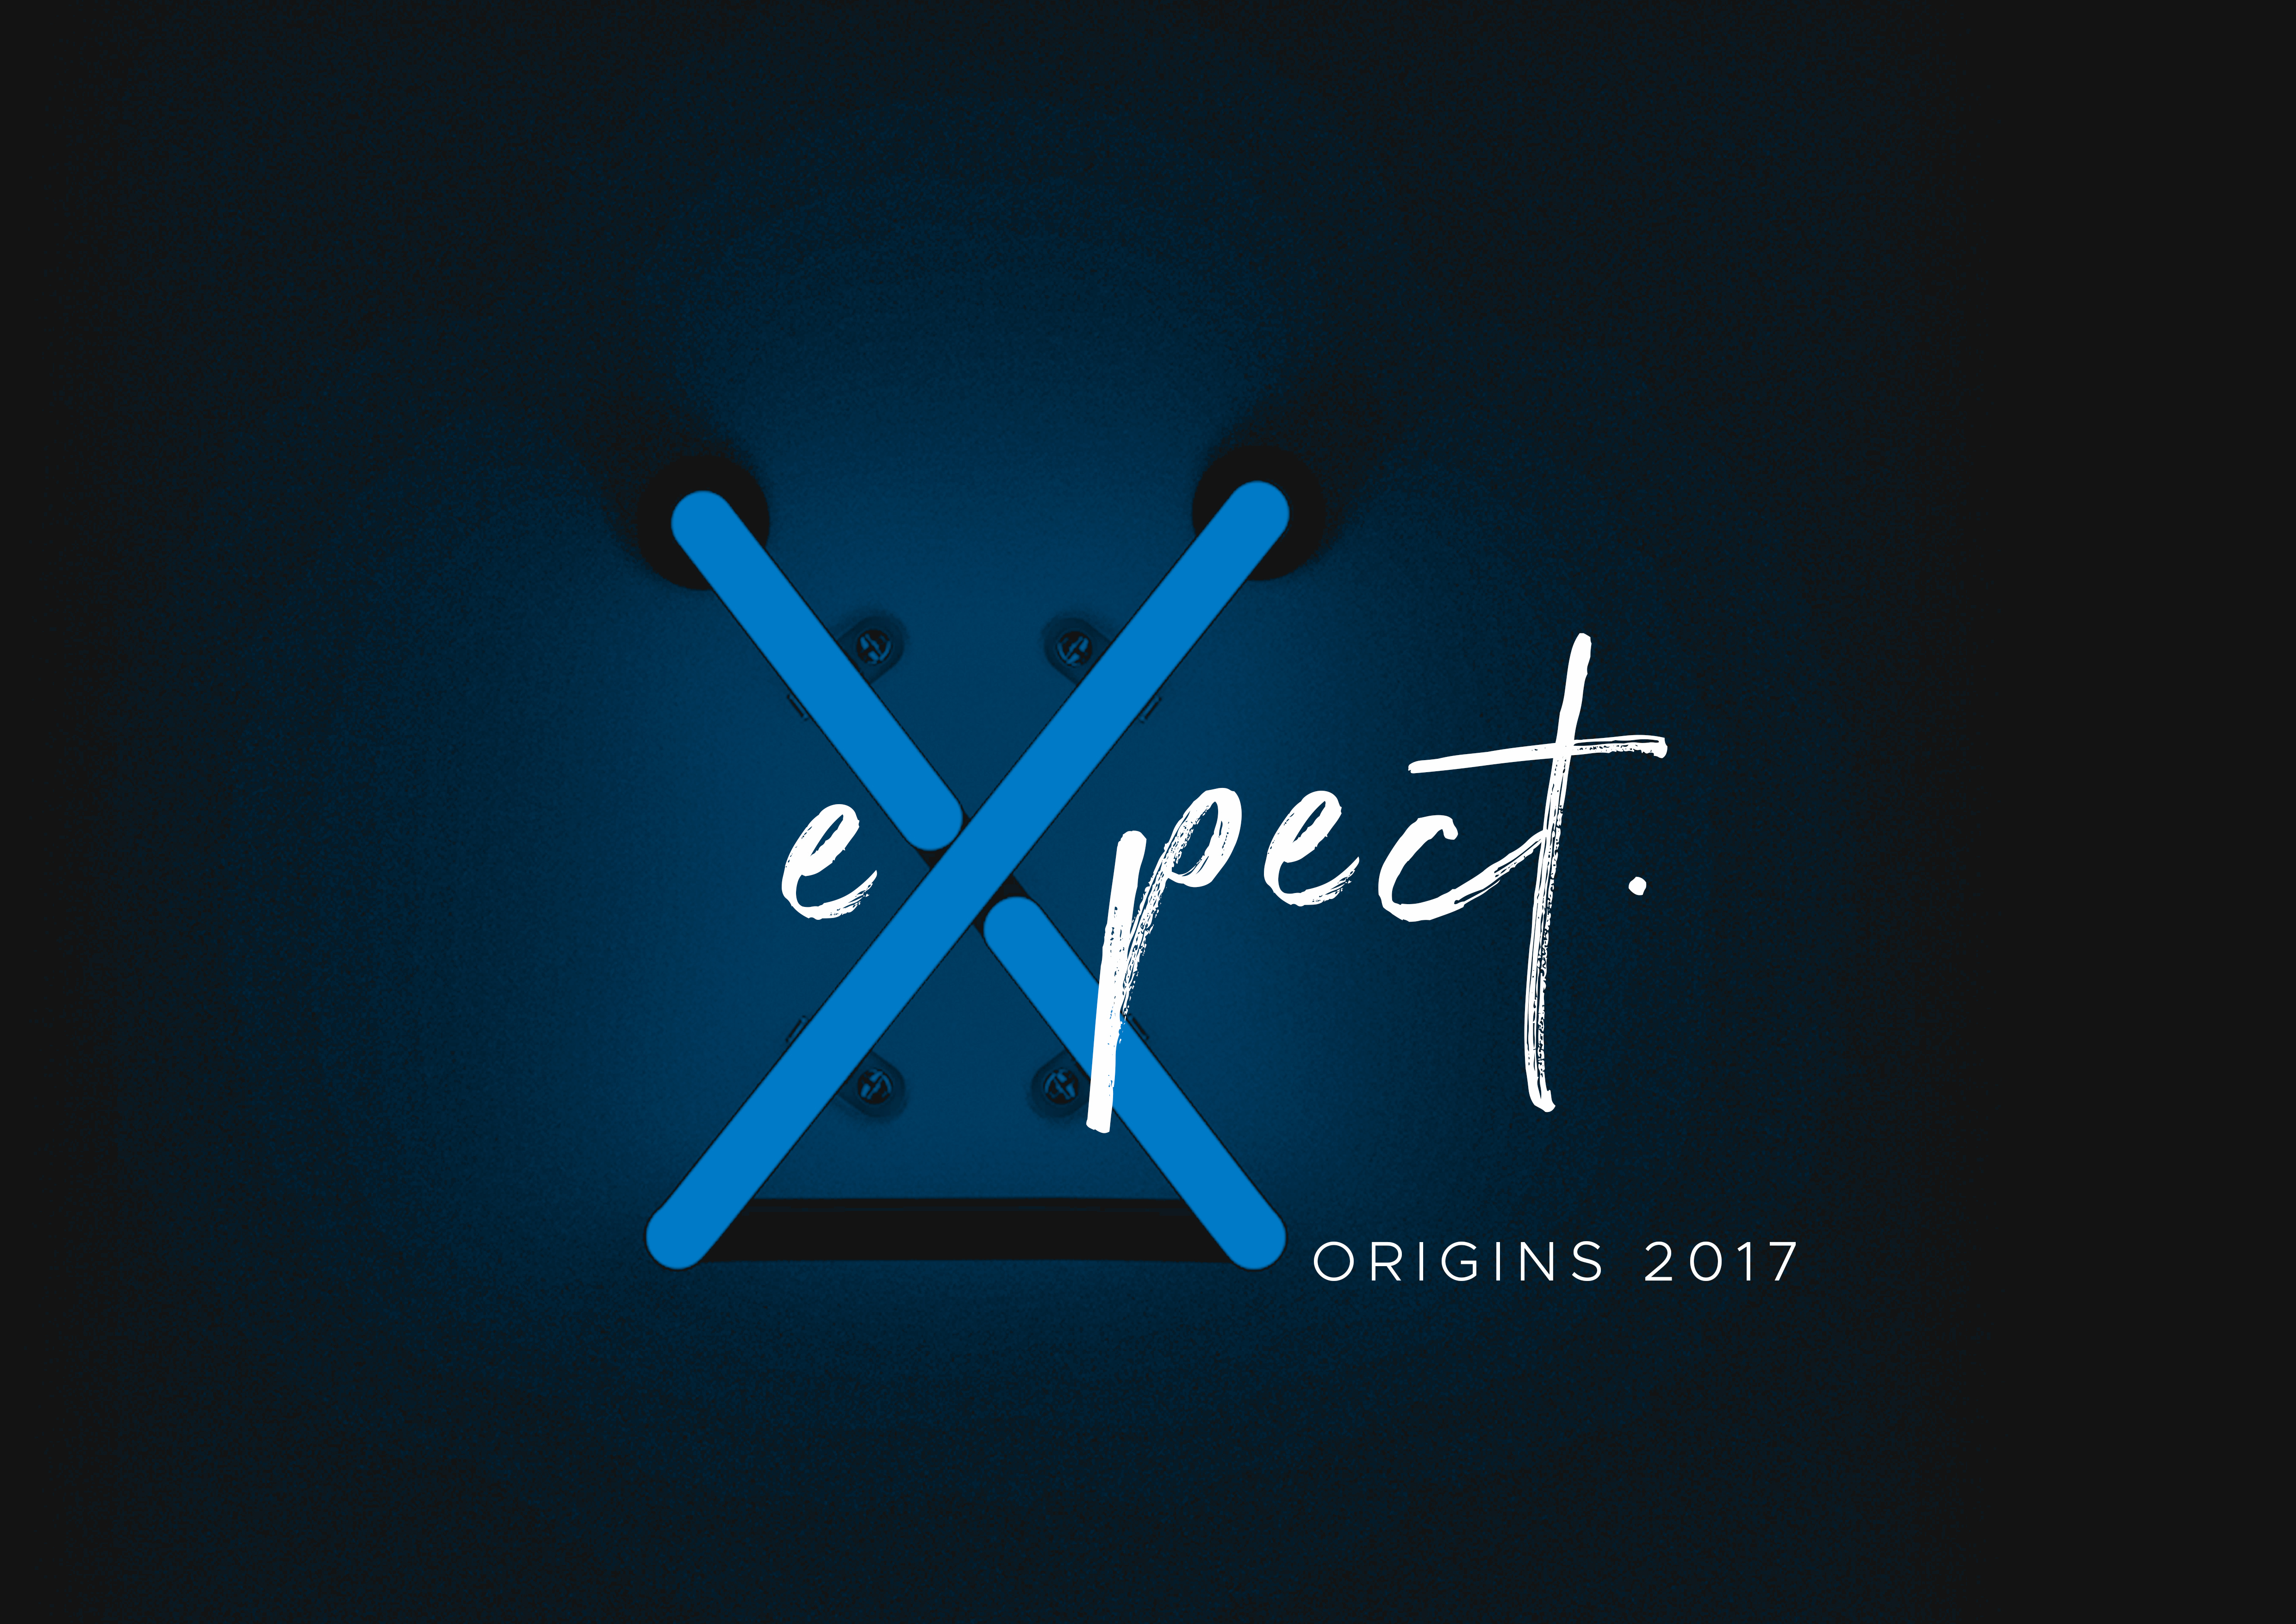 Expect 2017 graphic2